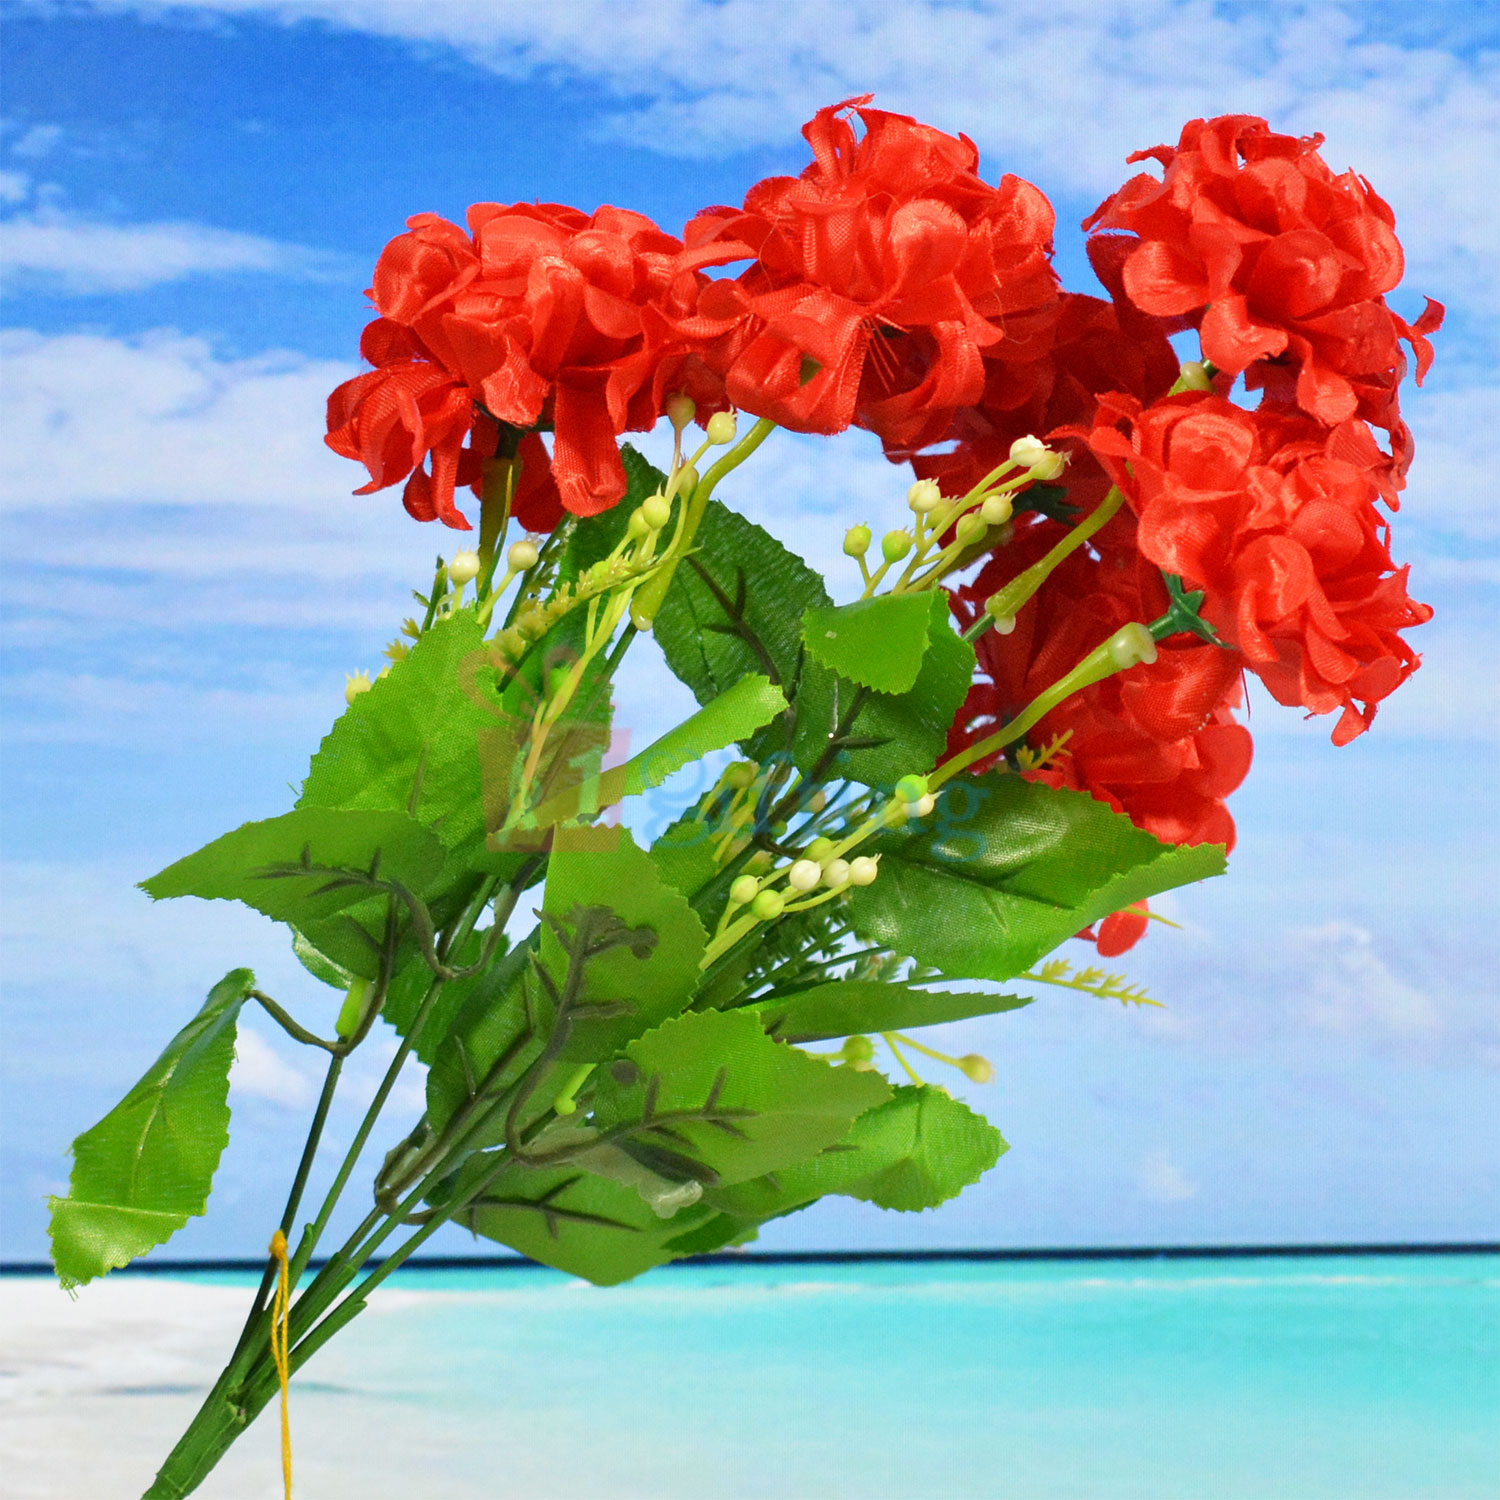 Amazing Buds with Red Flower Decorative Artificial Plant